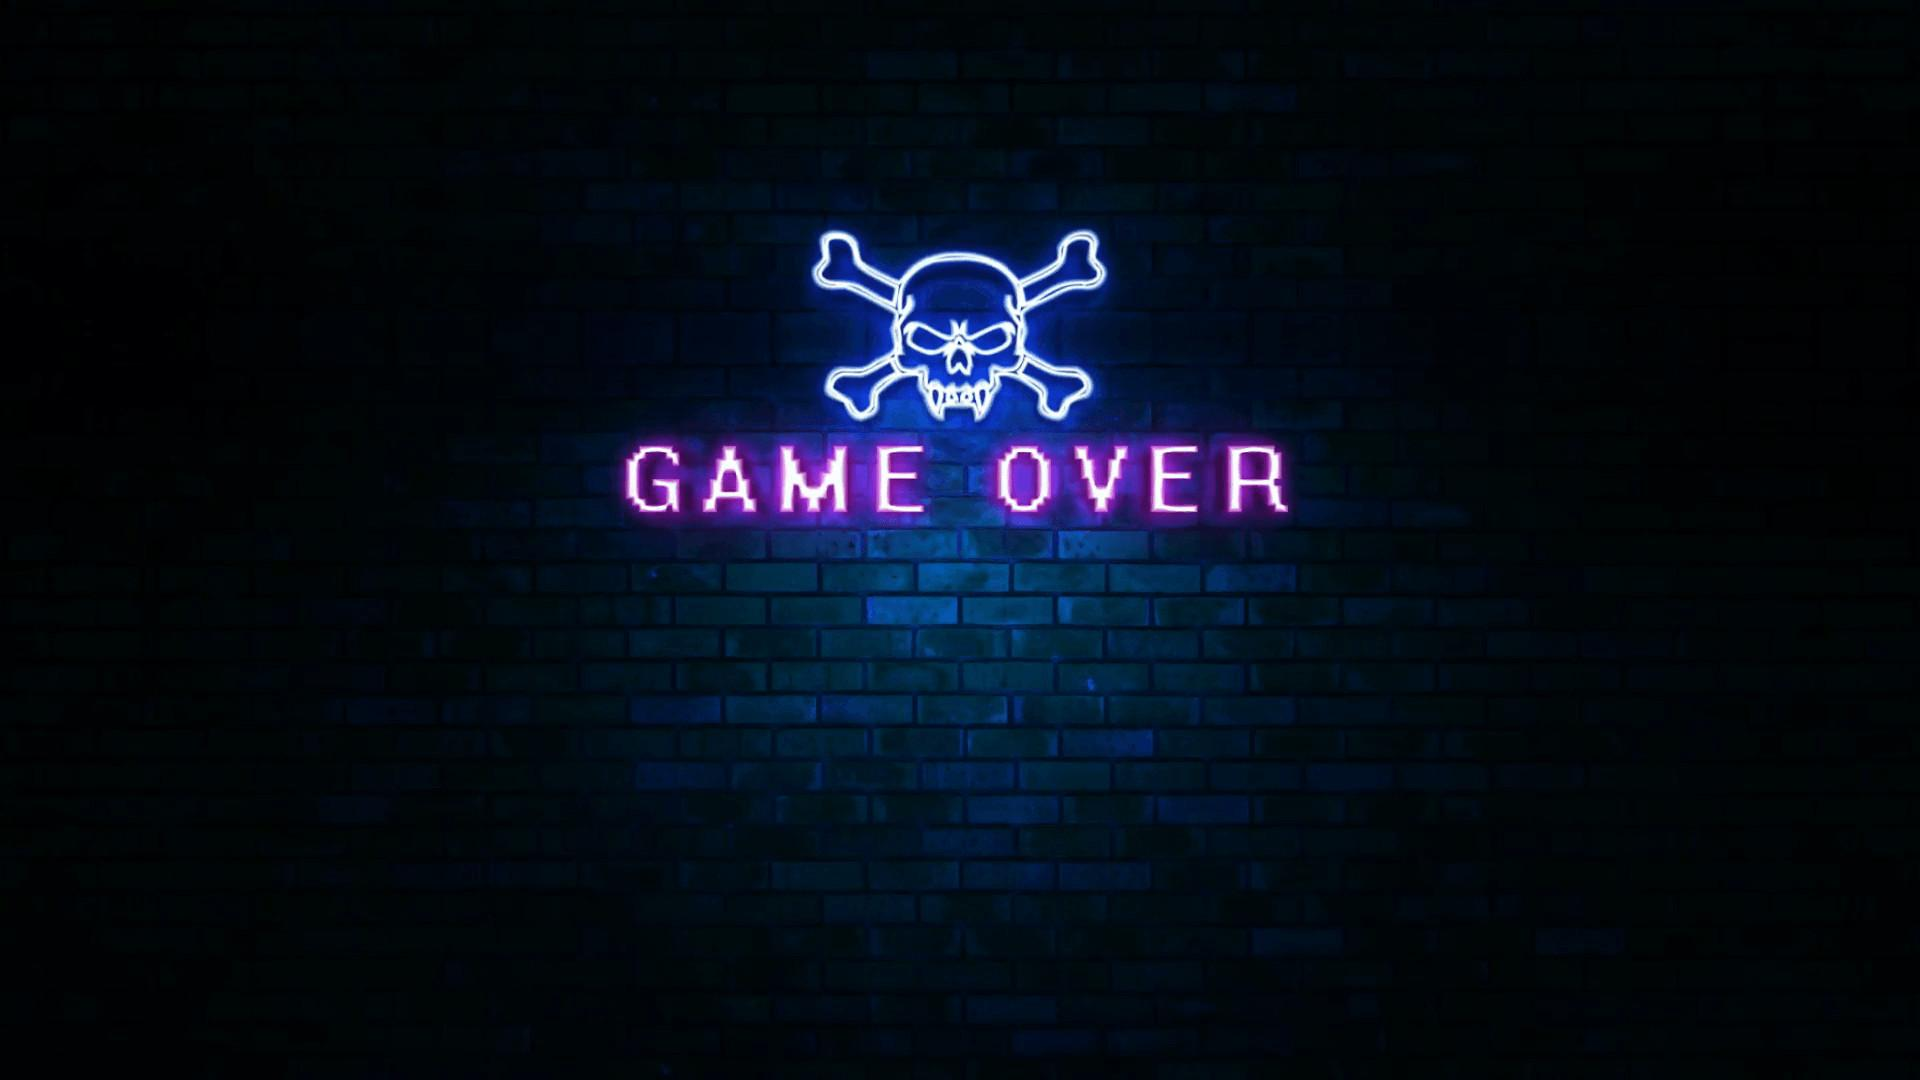 4k Neon Light Sign Wallpapers Wallpaper Cave